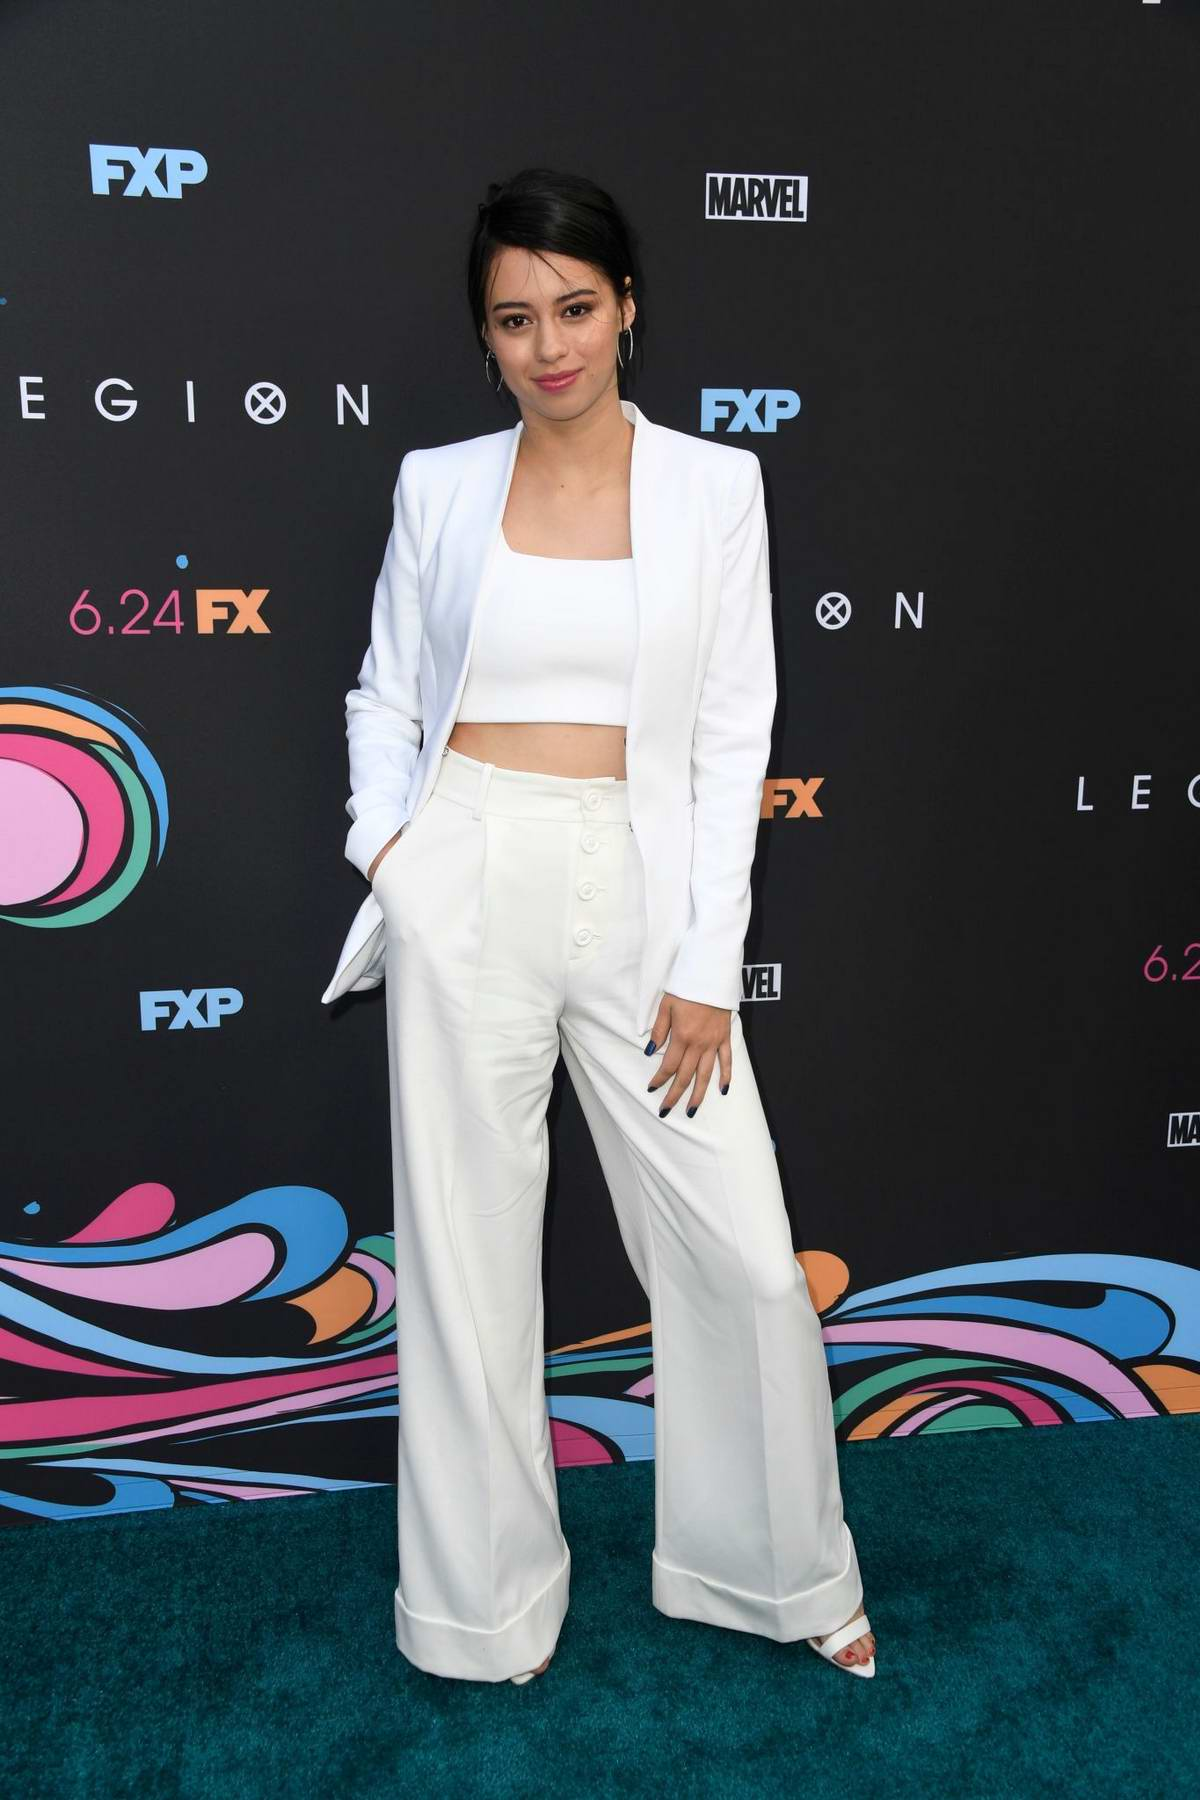 Amber Midthunder attends the Premiere of FX's 'Legion' Season 3 in Hollywood, California